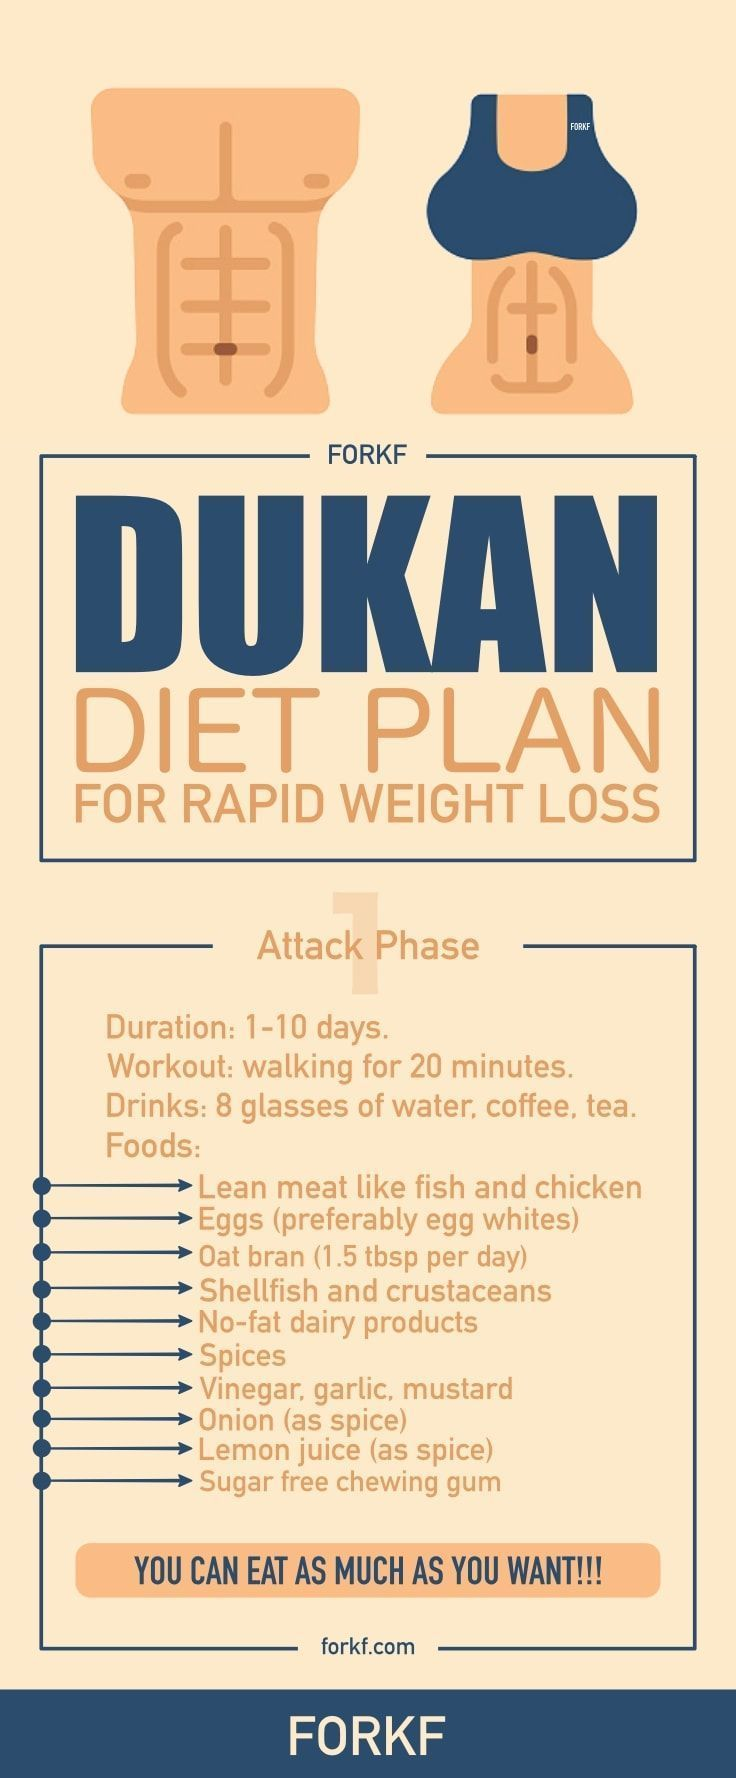 Dukan Diet Plan for rapid weight loss